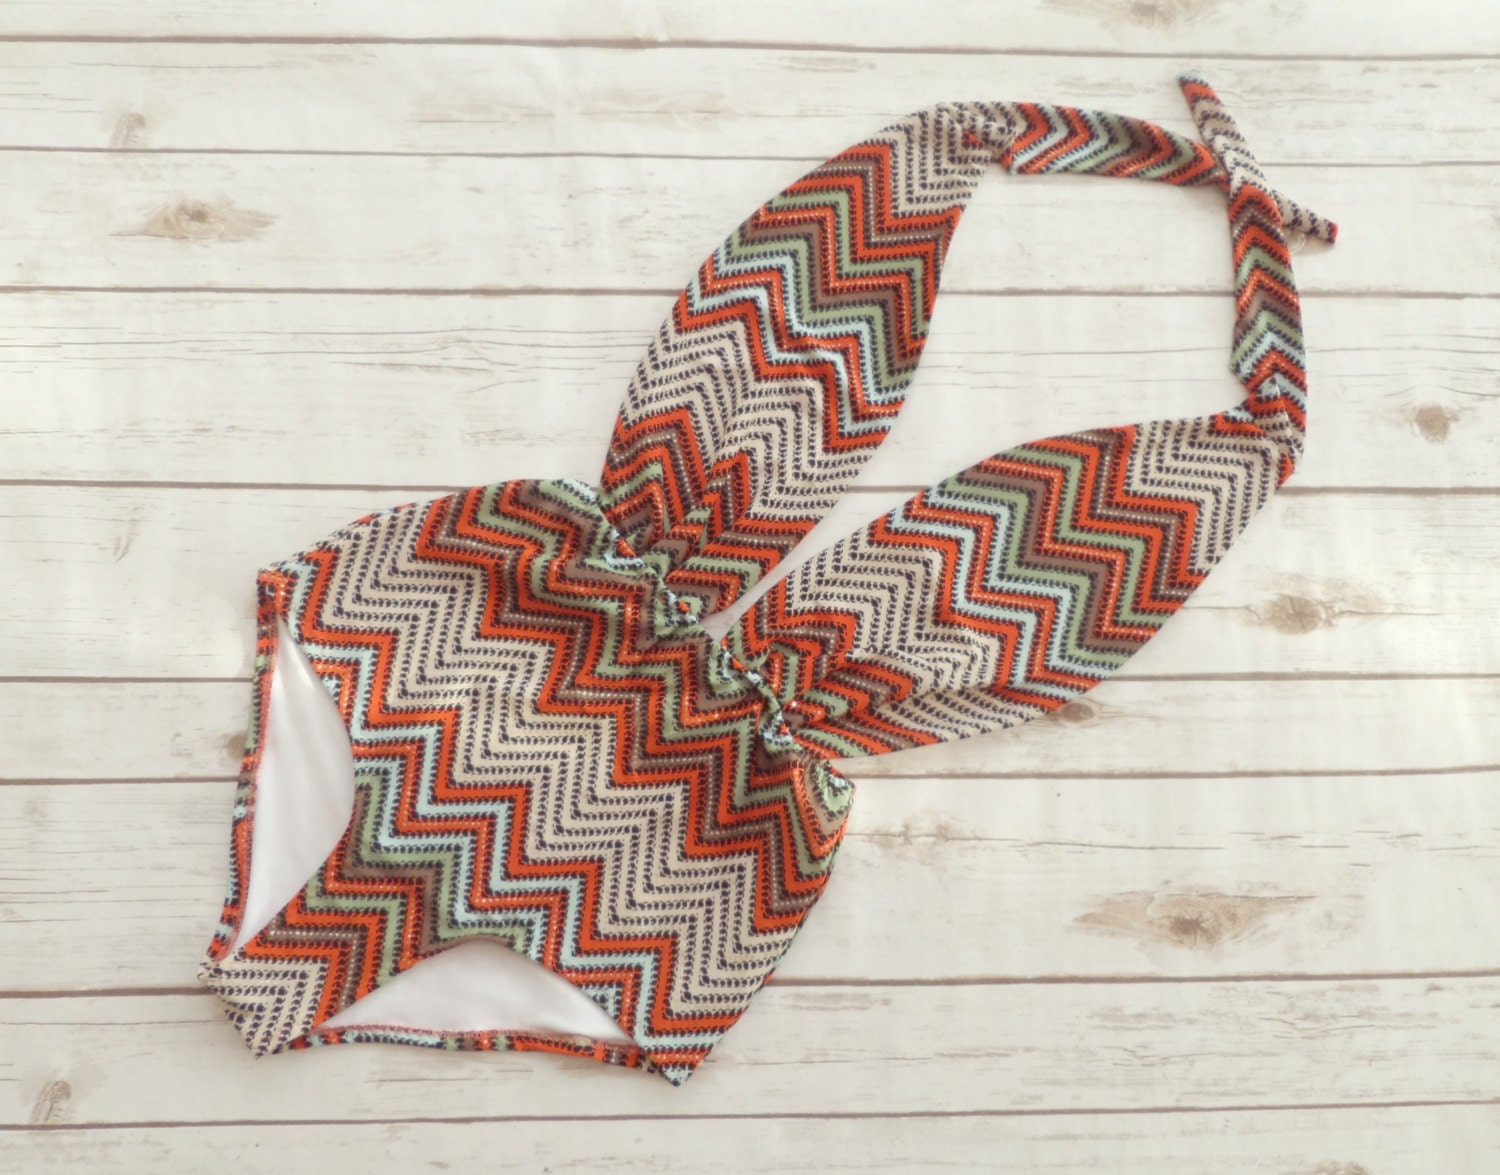 Swimsuit High Waisted Vintage Festival Style One Piece Retro Bathing Suit  Chevron Zigzag Print Swimwear In Earthy Tones and Glitter